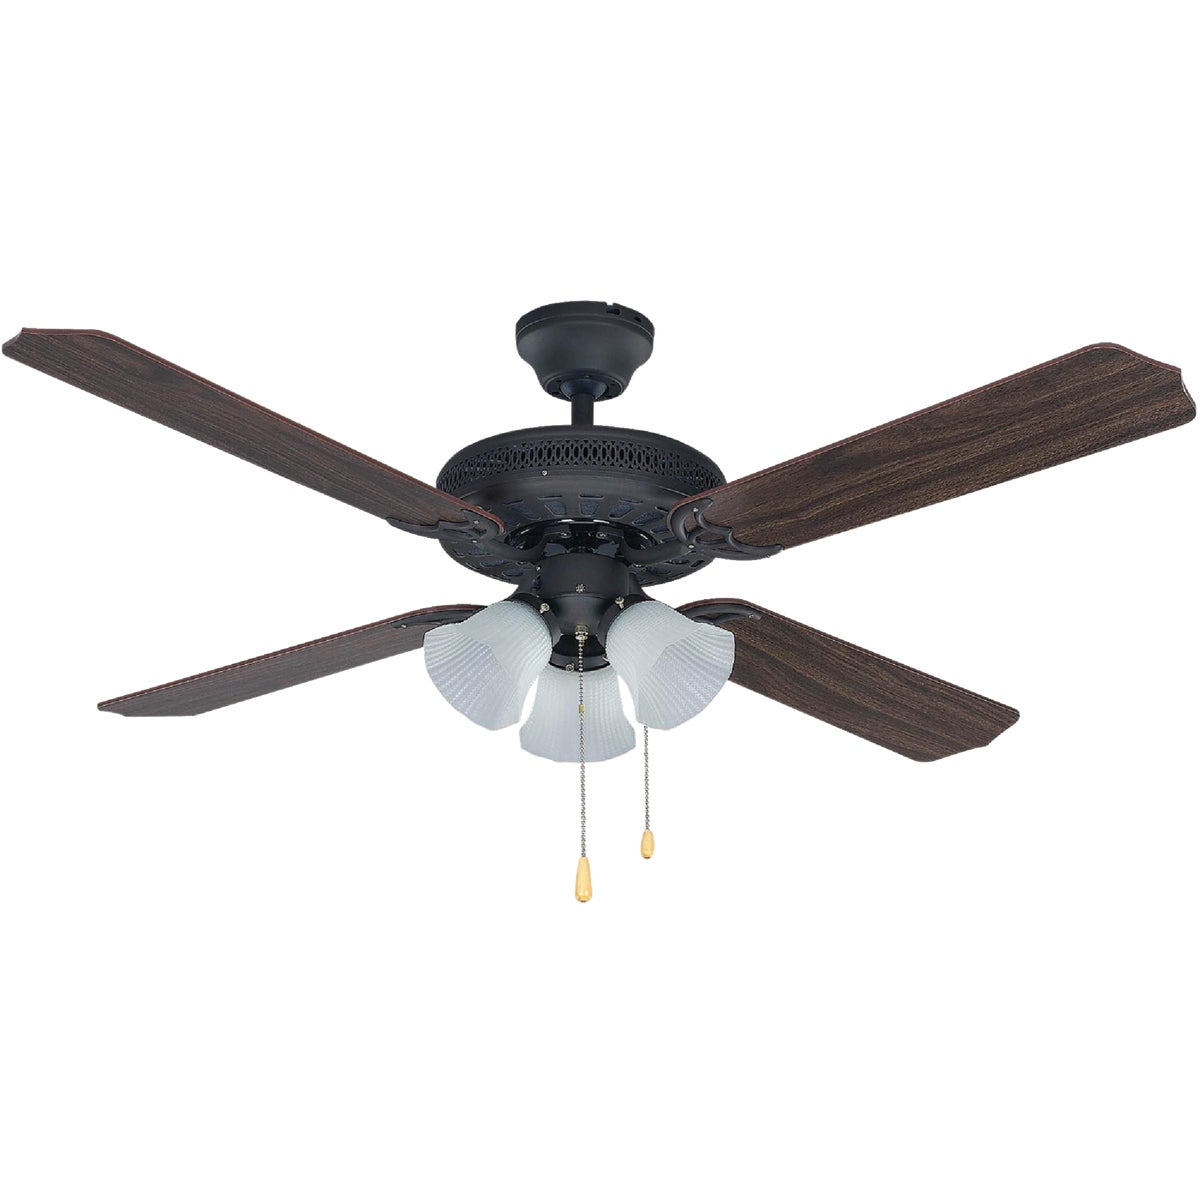 "52"" CHATEAU ORB CEIL FAN"